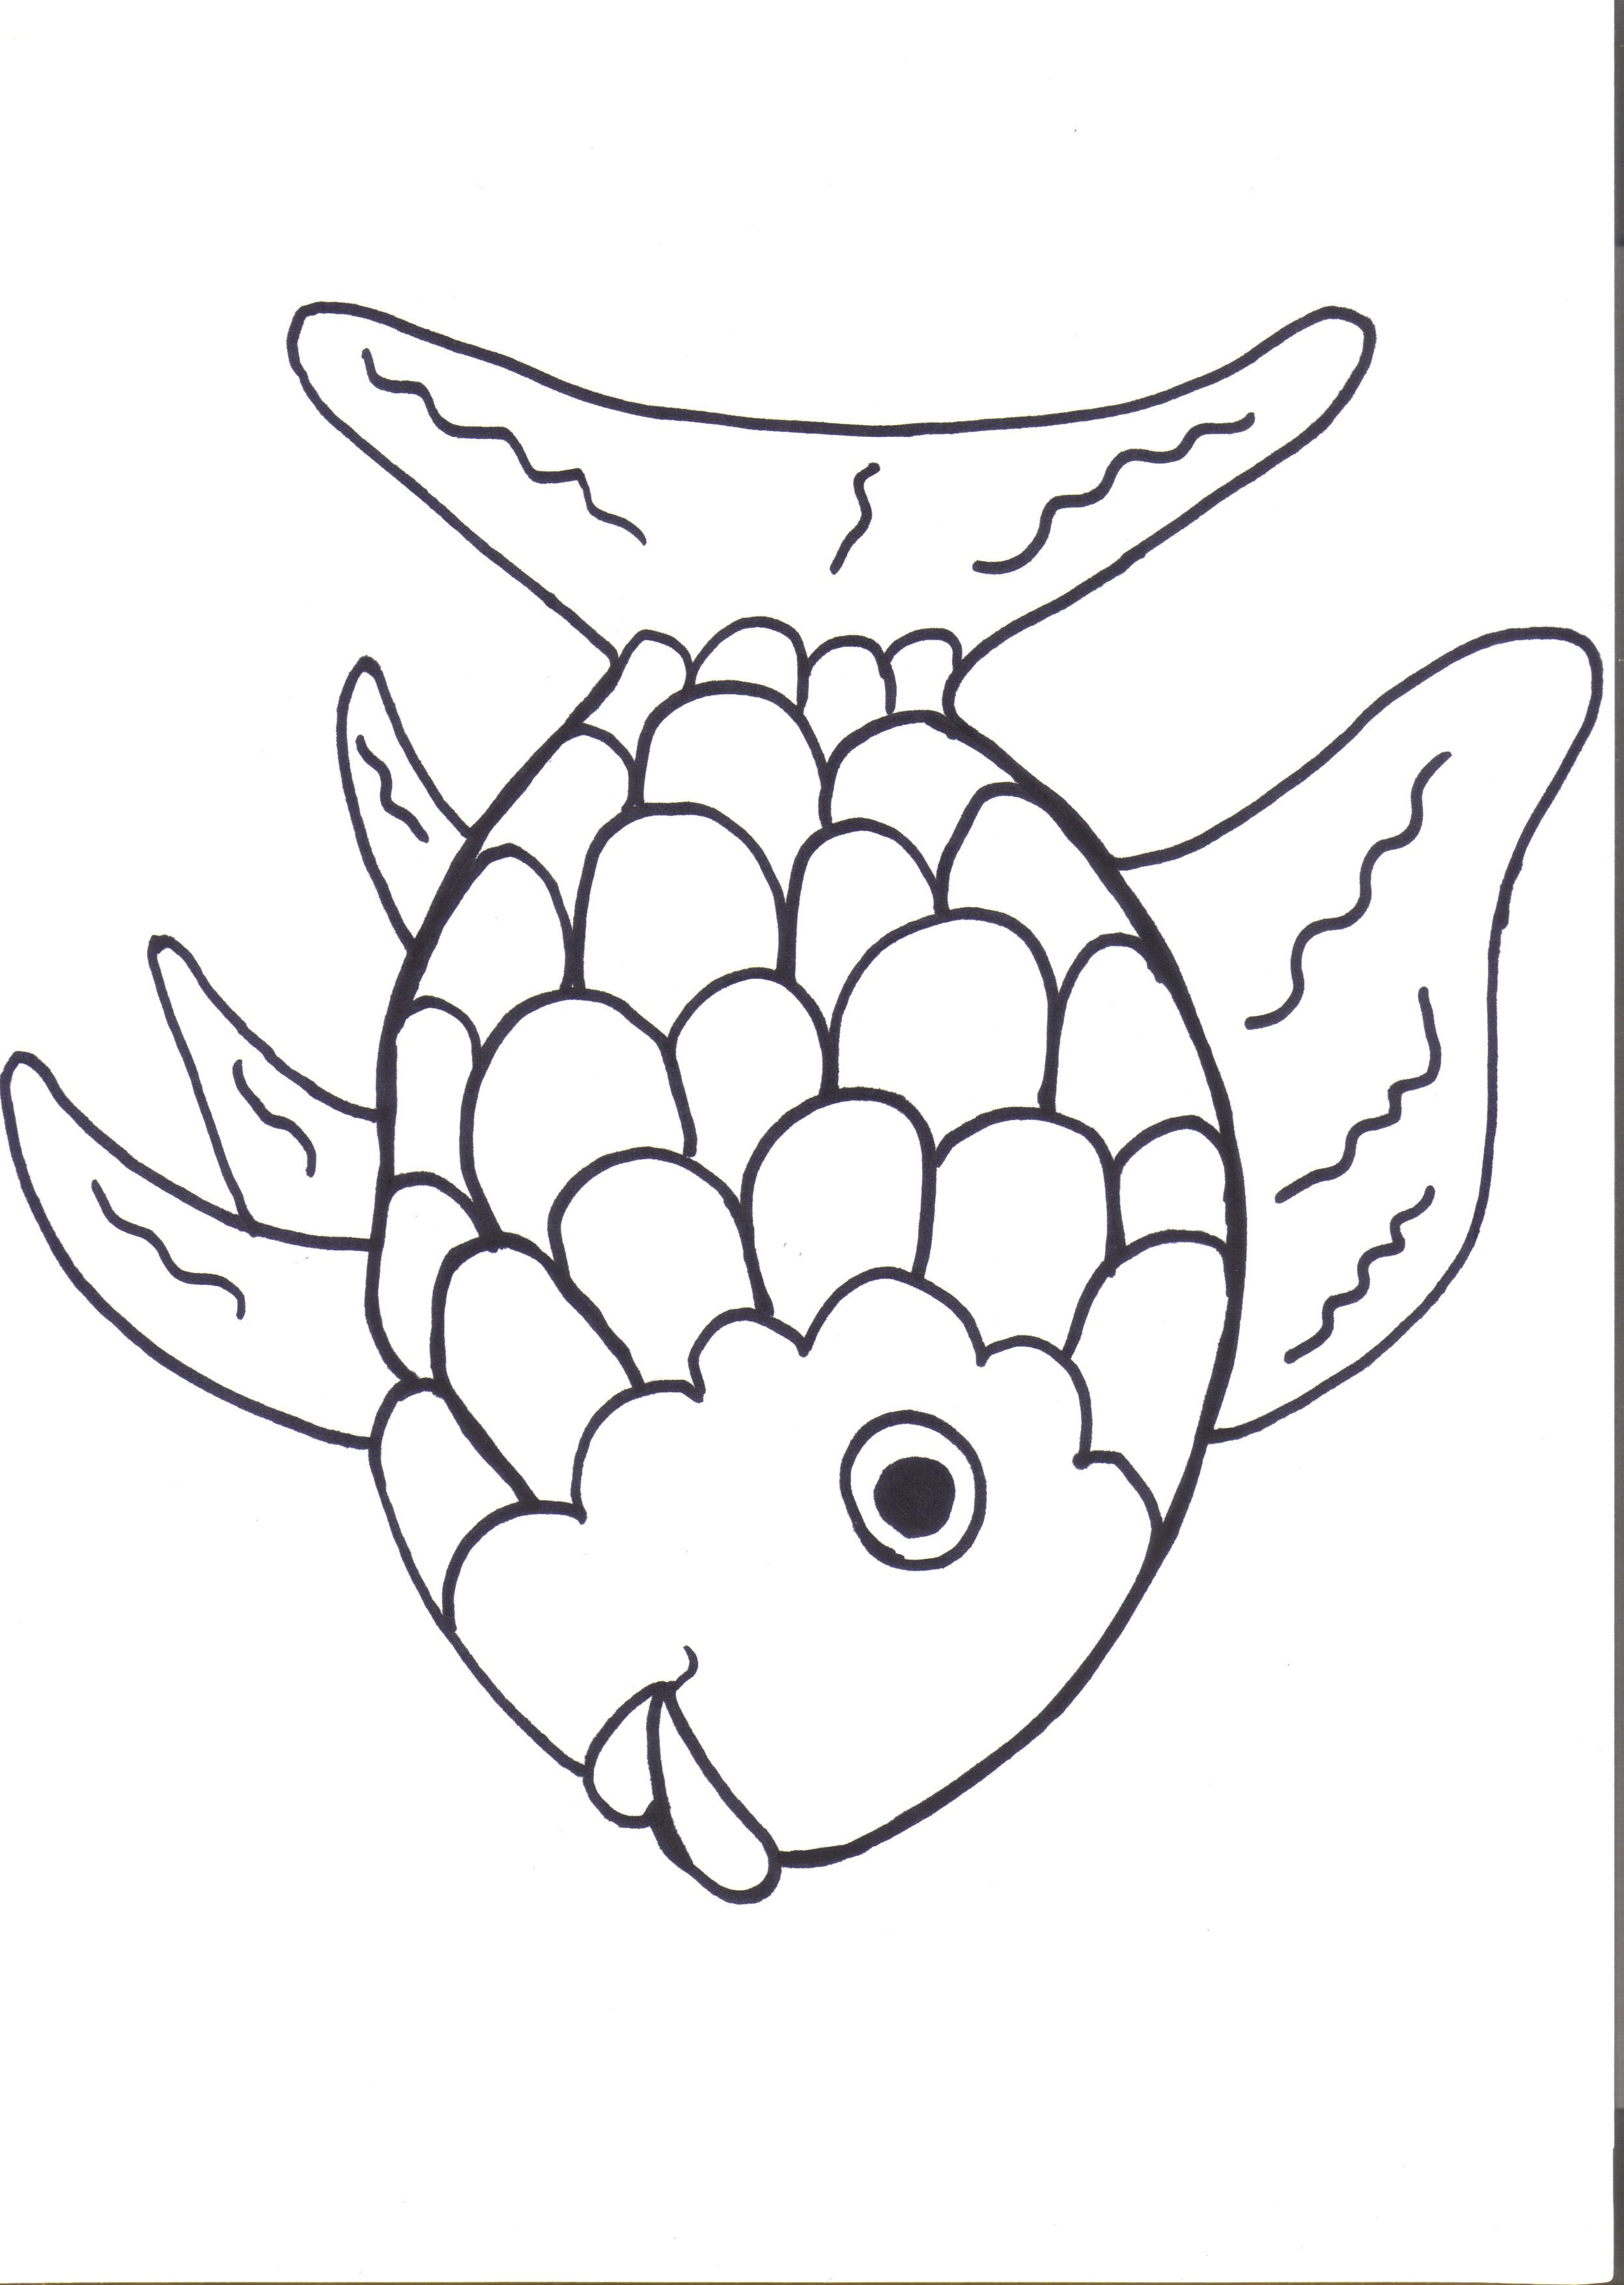 Rainbow Fish Printables August Preschool Themes